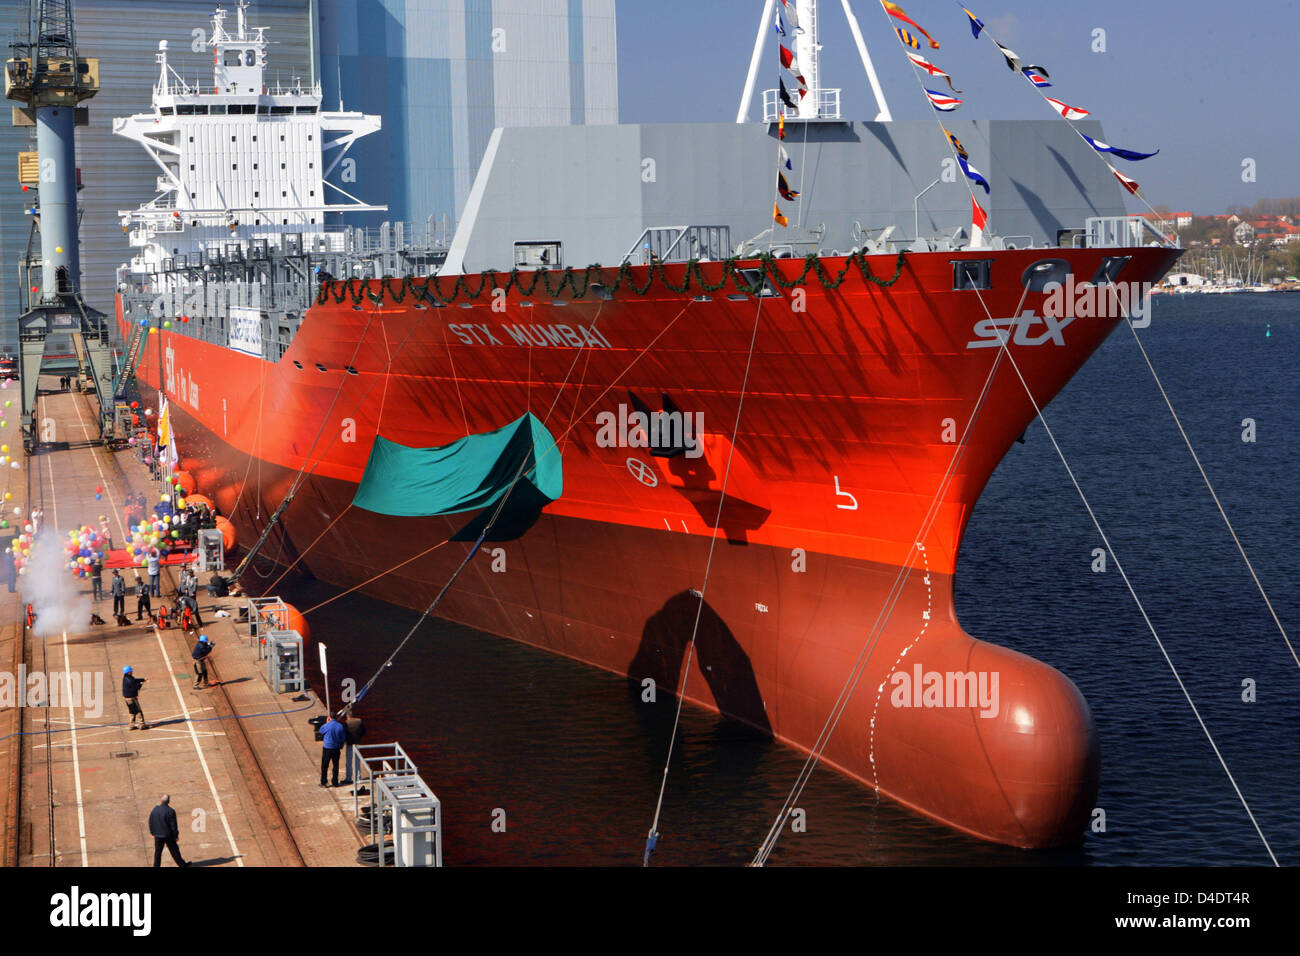 Container ship 'STX Mumbai' is christened at the Aker Yards shipyard in Wismar, Germany, 21 April 2008. - Stock Image